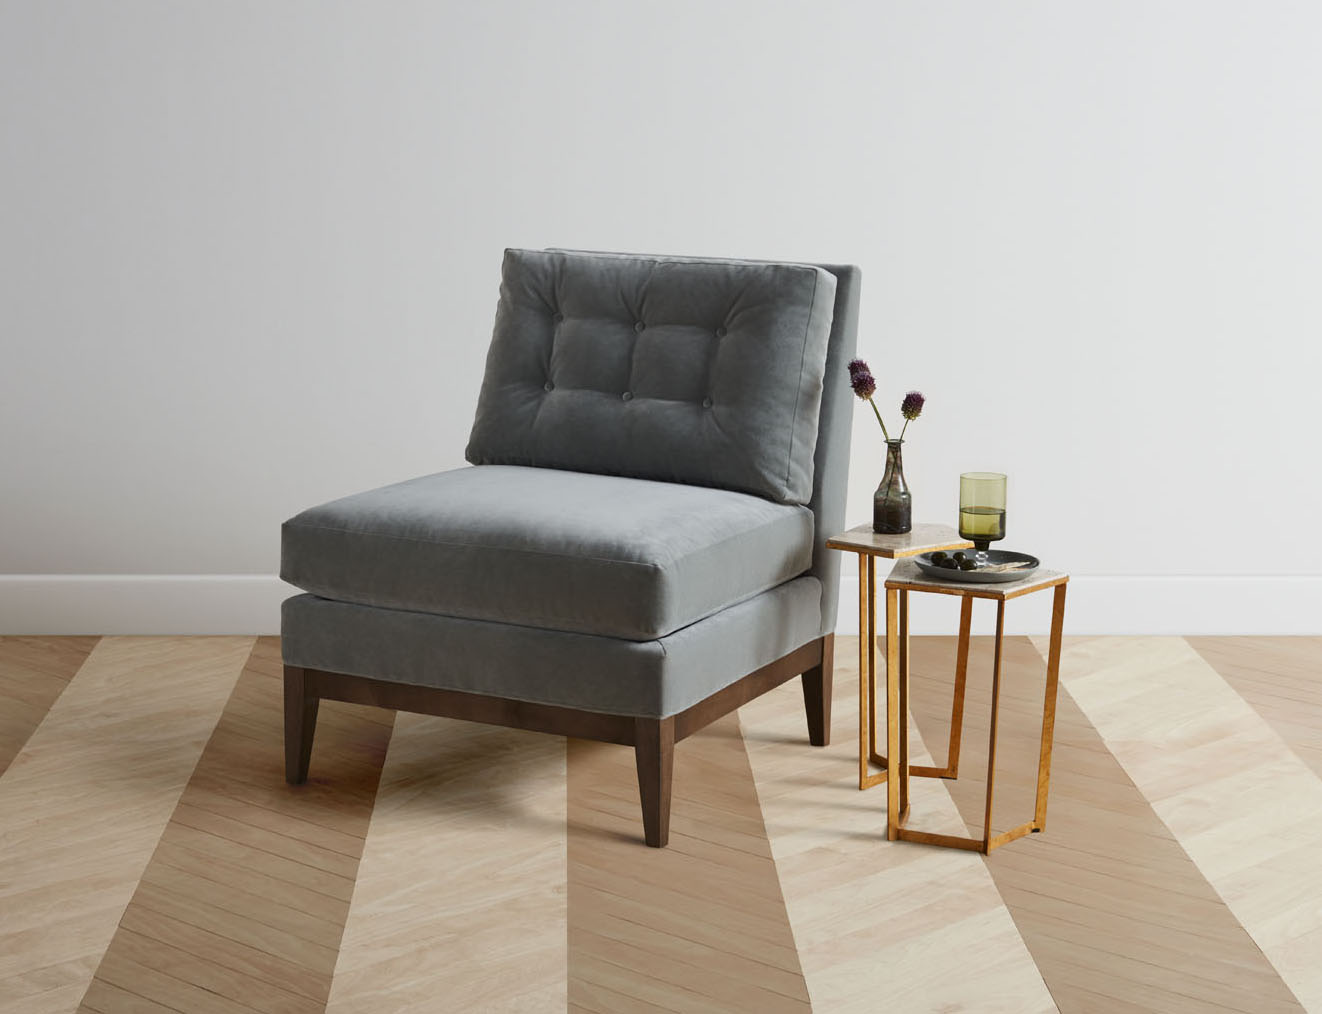 The Waverly chair